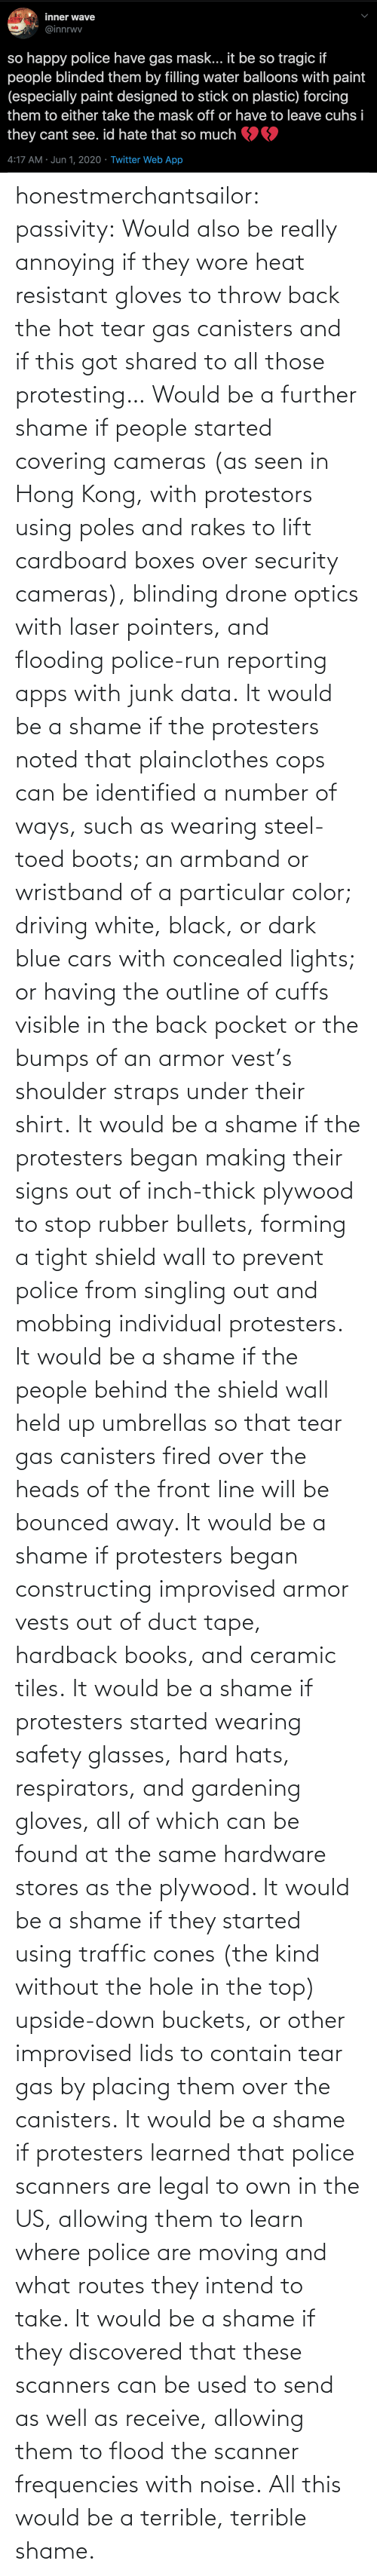 Com Watch: honestmerchantsailor:  passivity: Would also be really annoying if they wore heat resistant gloves to throw back the hot tear gas canisters and if this got shared to all those protesting… Would be a further shame if people started covering cameras (as seen in Hong Kong, with protestors using poles and rakes to lift cardboard boxes over security cameras), blinding drone optics with laser pointers, and flooding police-run reporting apps with junk data. It would be a shame if the protesters noted that plainclothes cops can be identified a number of ways, such as wearing steel-toed boots; an armband or wristband of a particular color; driving white, black, or dark blue cars with concealed lights; or having the outline of cuffs visible in the back pocket or the bumps of an armor vest's shoulder straps under their shirt. It would be a shame if the protesters began making their signs out of inch-thick plywood to stop rubber bullets, forming a tight shield wall to prevent police from singling out and mobbing individual protesters. It would be a shame if the people behind the shield wall held up umbrellas so that tear gas canisters fired over the heads of the front line will be bounced away. It would be a shame if protesters began constructing improvised armor vests out of duct tape, hardback books, and ceramic tiles. It would be a shame if protesters started wearing safety glasses, hard hats, respirators, and gardening gloves, all of which can be found at the same hardware stores as the plywood. It would be a shame if they started using traffic cones (the kind without the hole in the top) upside-down buckets, or other improvised lids to contain tear gas by placing them over the canisters. It would be a shame if protesters learned that police scanners are legal to own in the US, allowing them to learn where police are moving and what routes they intend to take. It would be a shame if they discovered that these scanners can be used to send as well as receive, allowing them to flood the scanner frequencies with noise. All this would be a terrible, terrible shame.